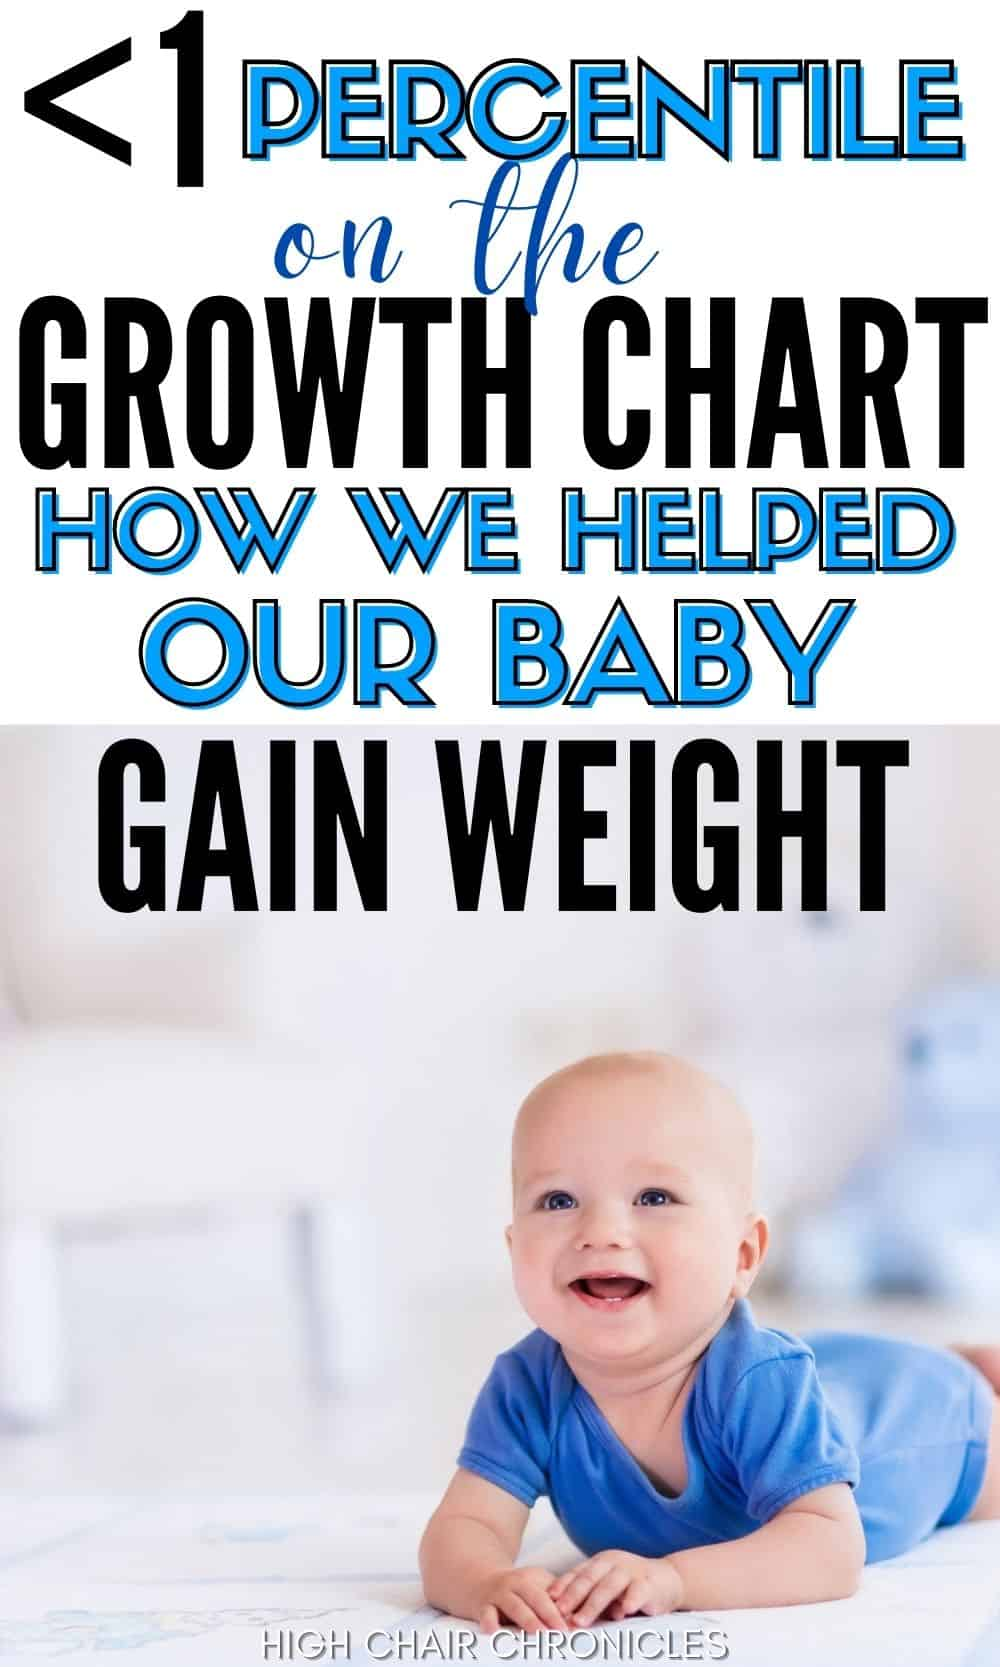 Pinnable image of how we helped our baby gain weight.